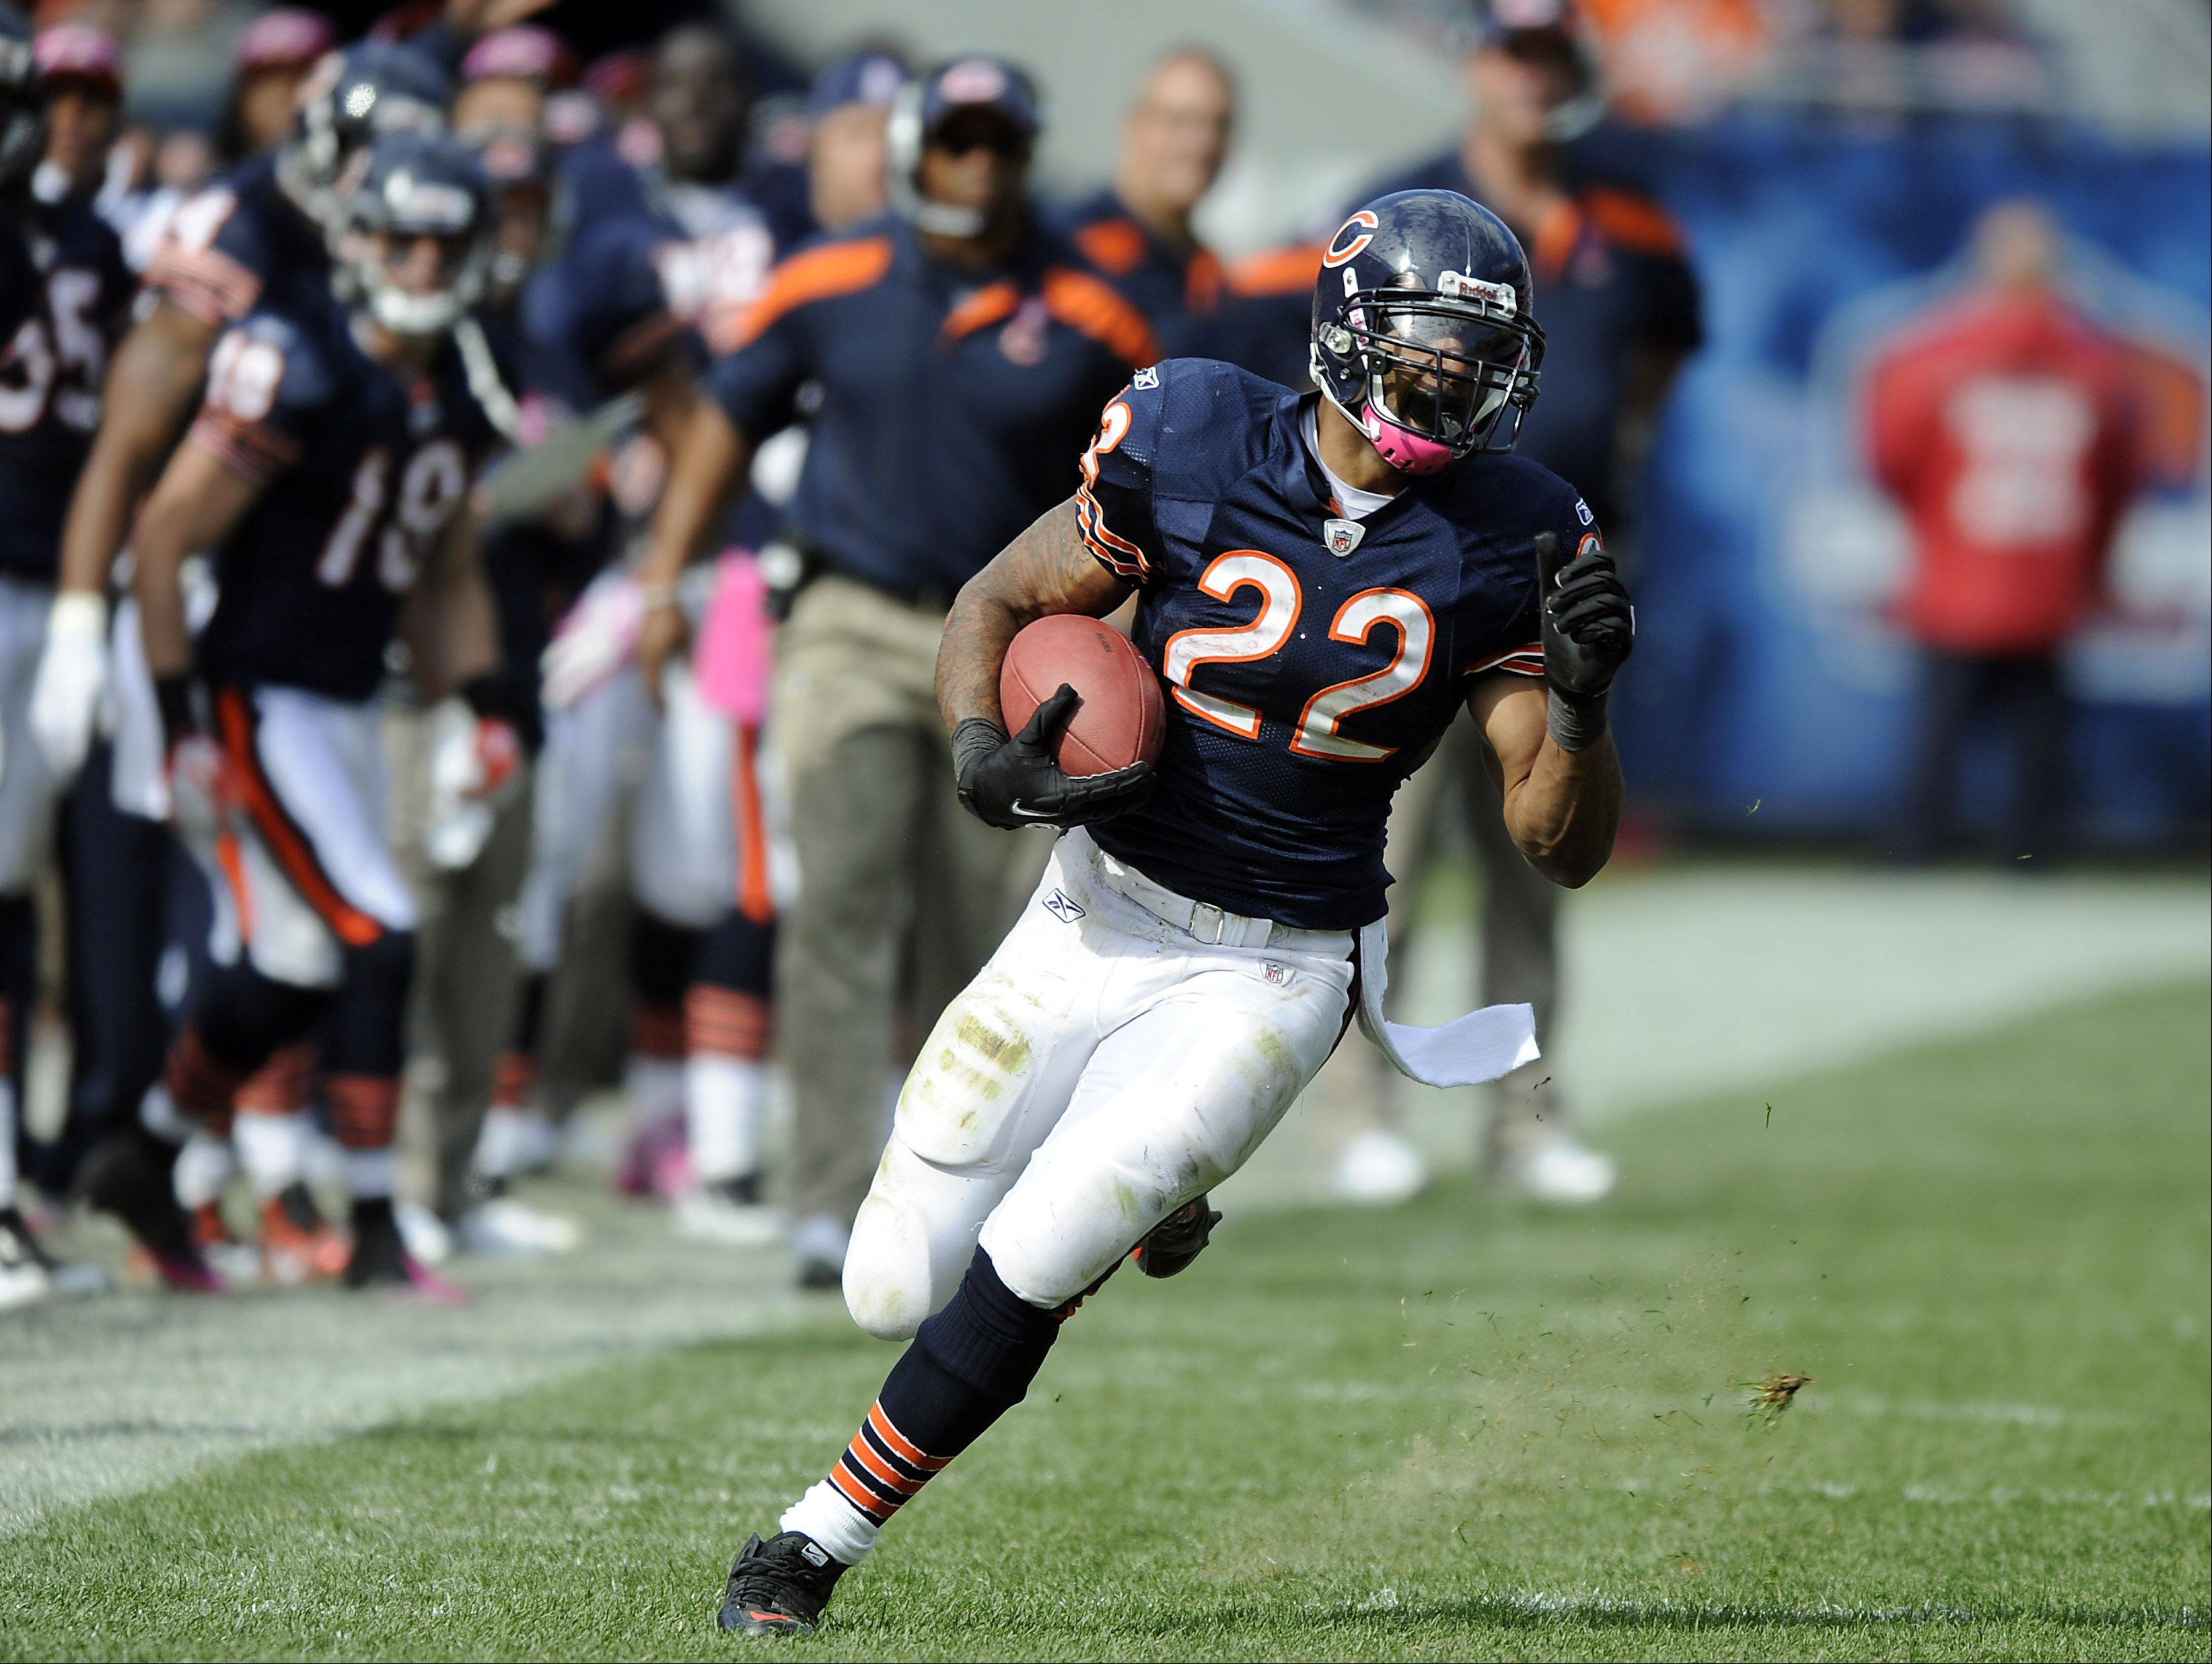 Bears Matt Forte on the run for a 20-yd 4th quarter run against the Panthers at Soldier Field in Chicago.